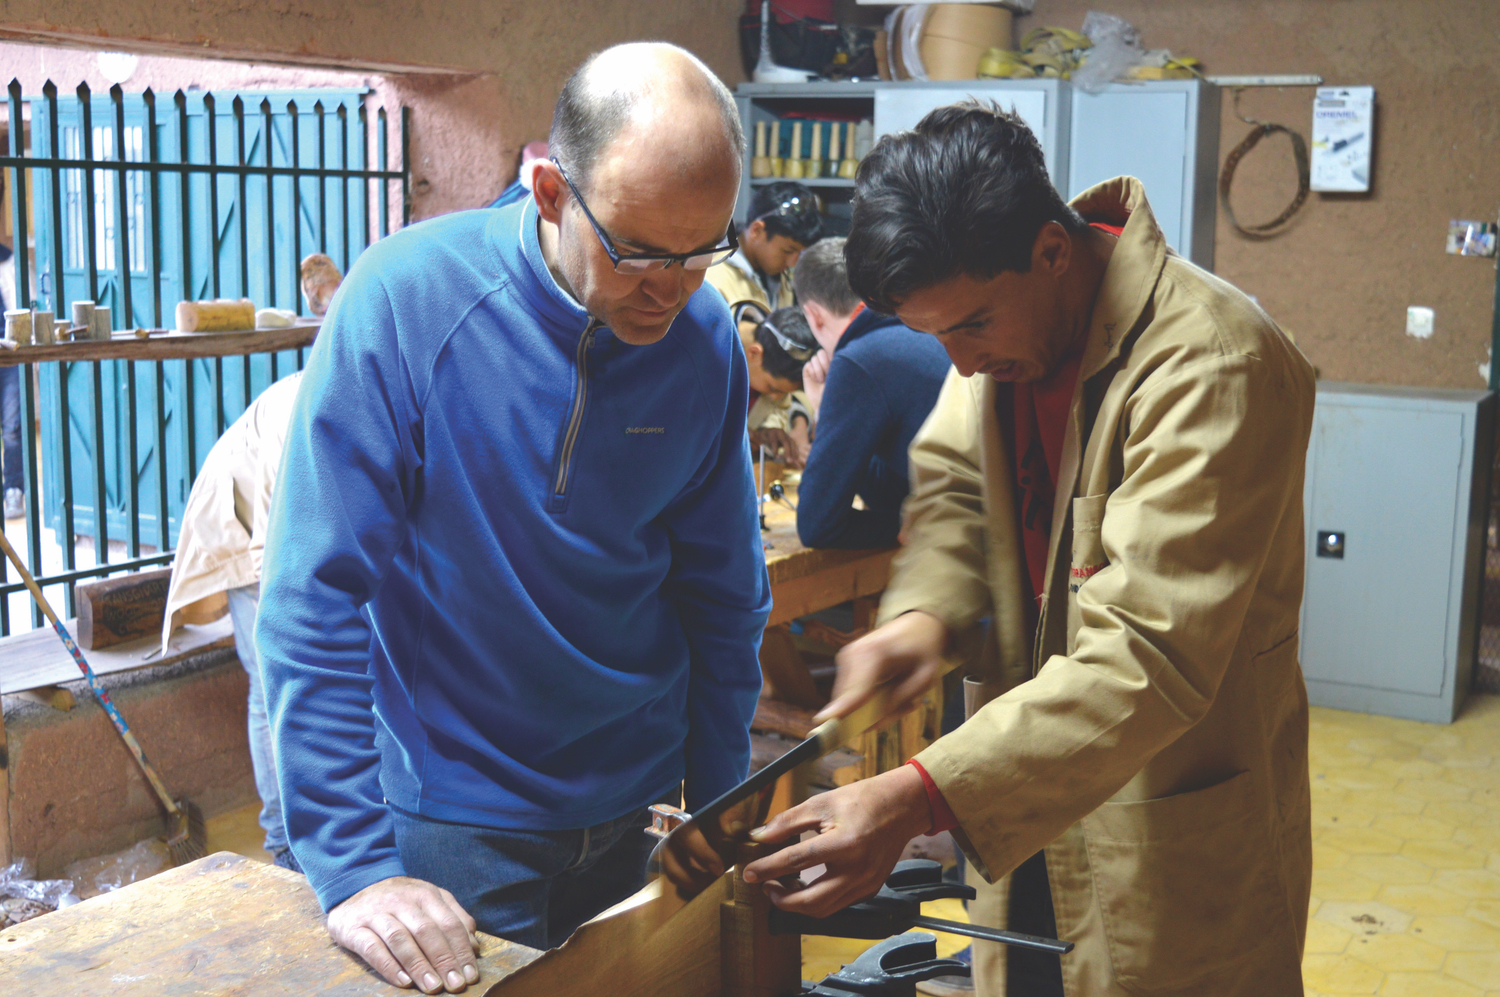 Paul Leamy working with Houssein, who is developing hand tool skills